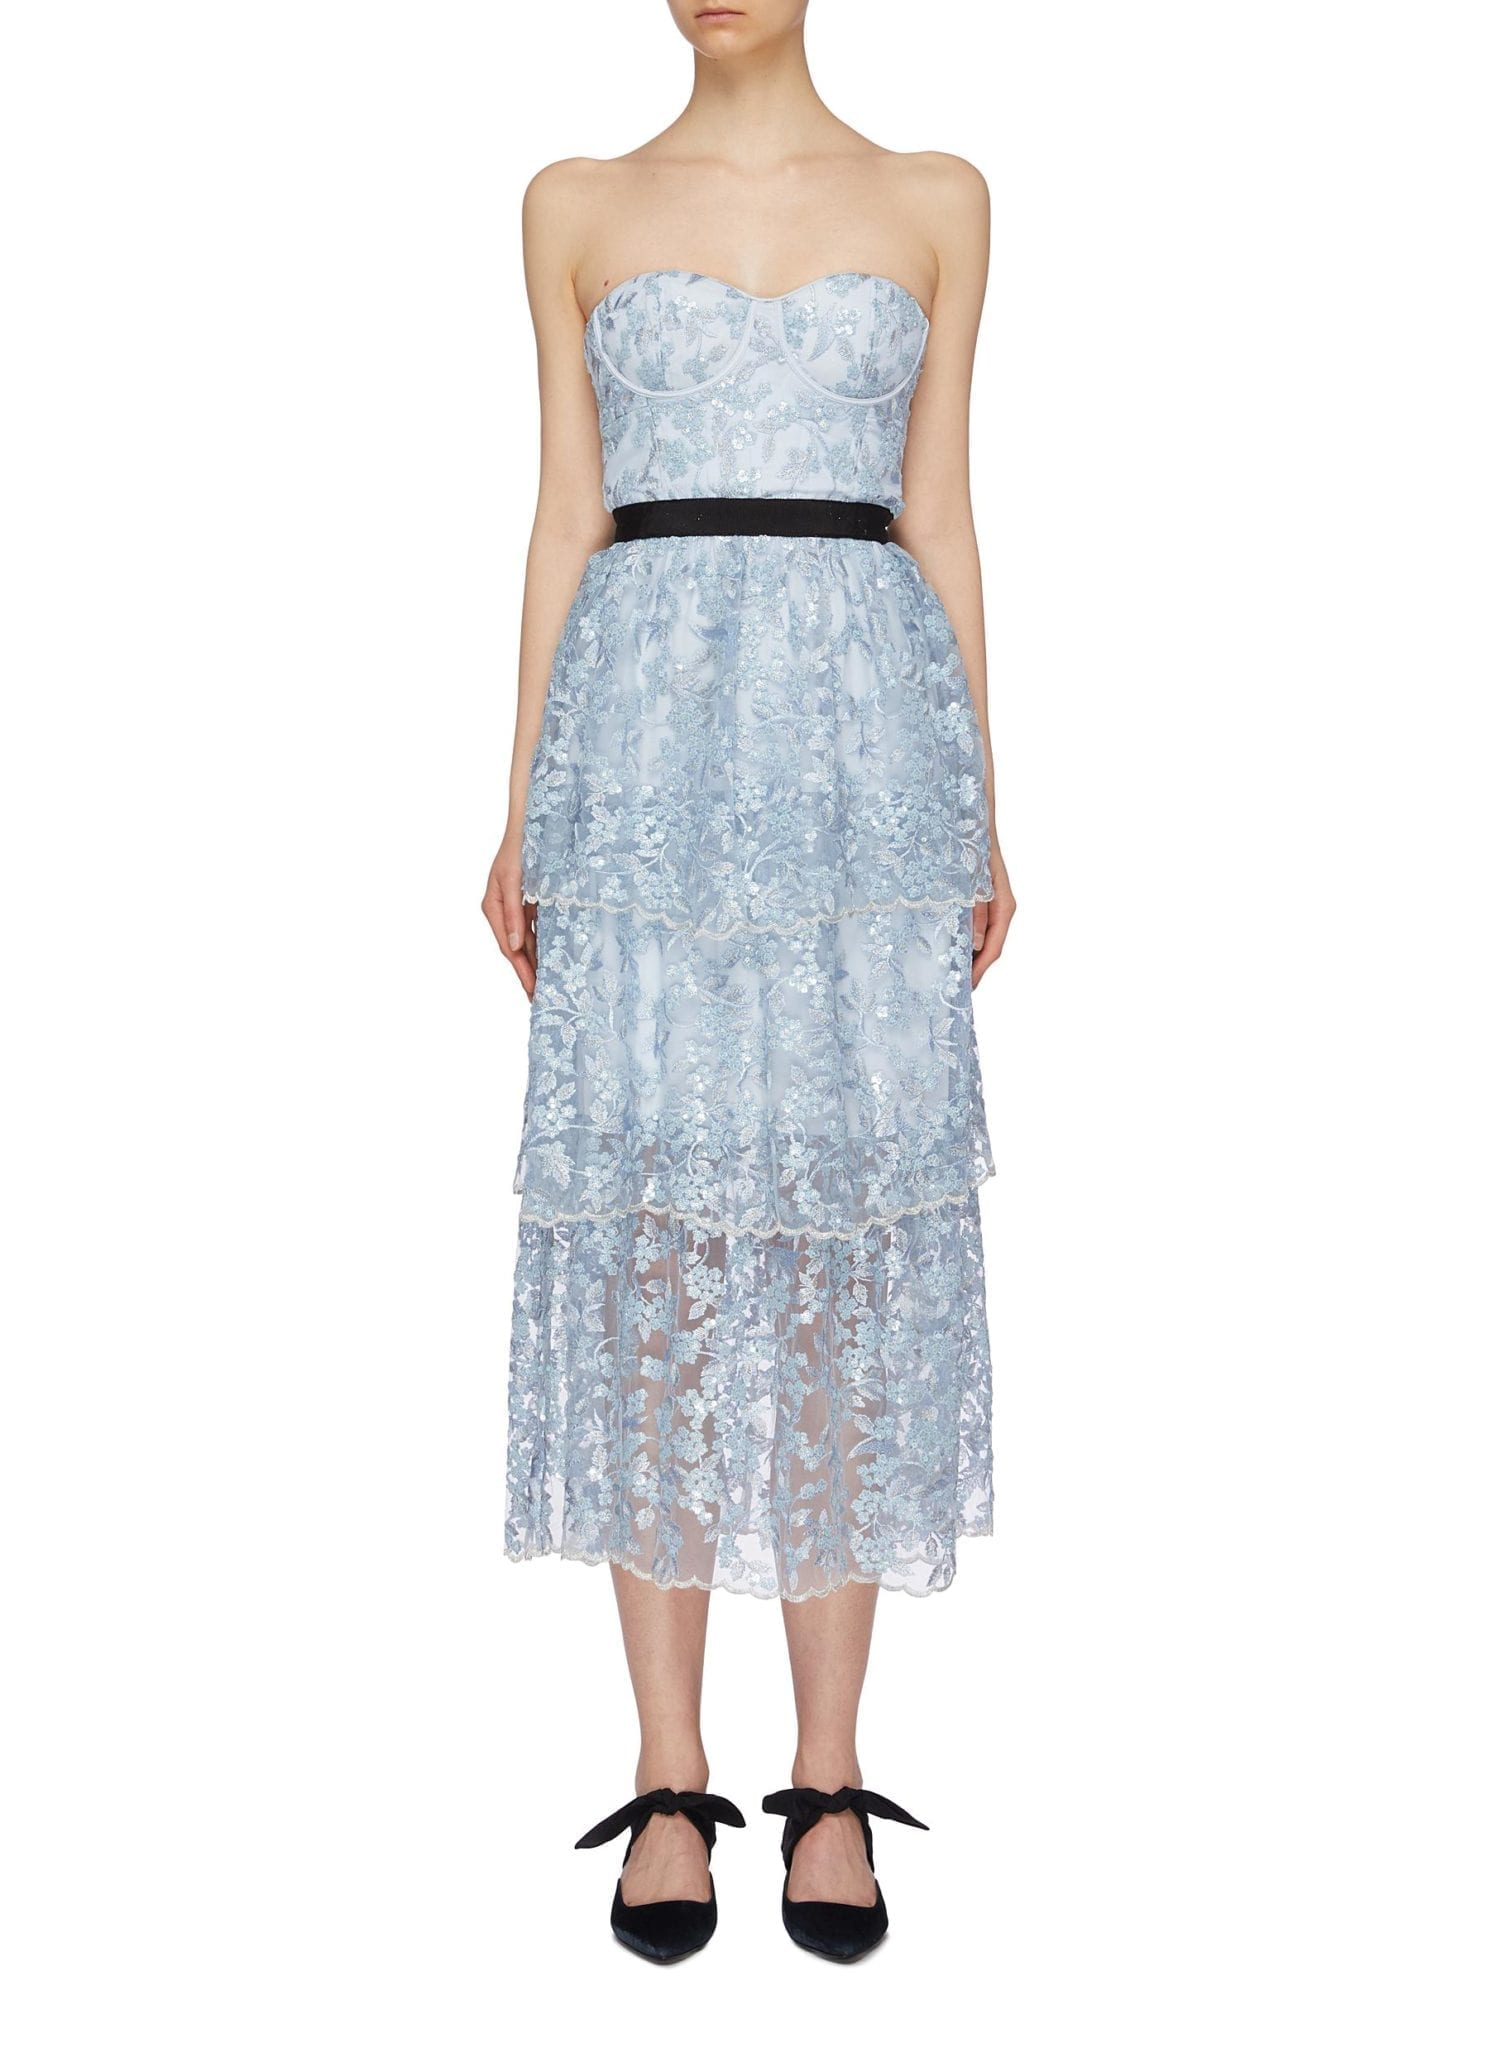 SELF-PORTRAIT Sequin Floral Tiered Mesh Strapless Midi Dress